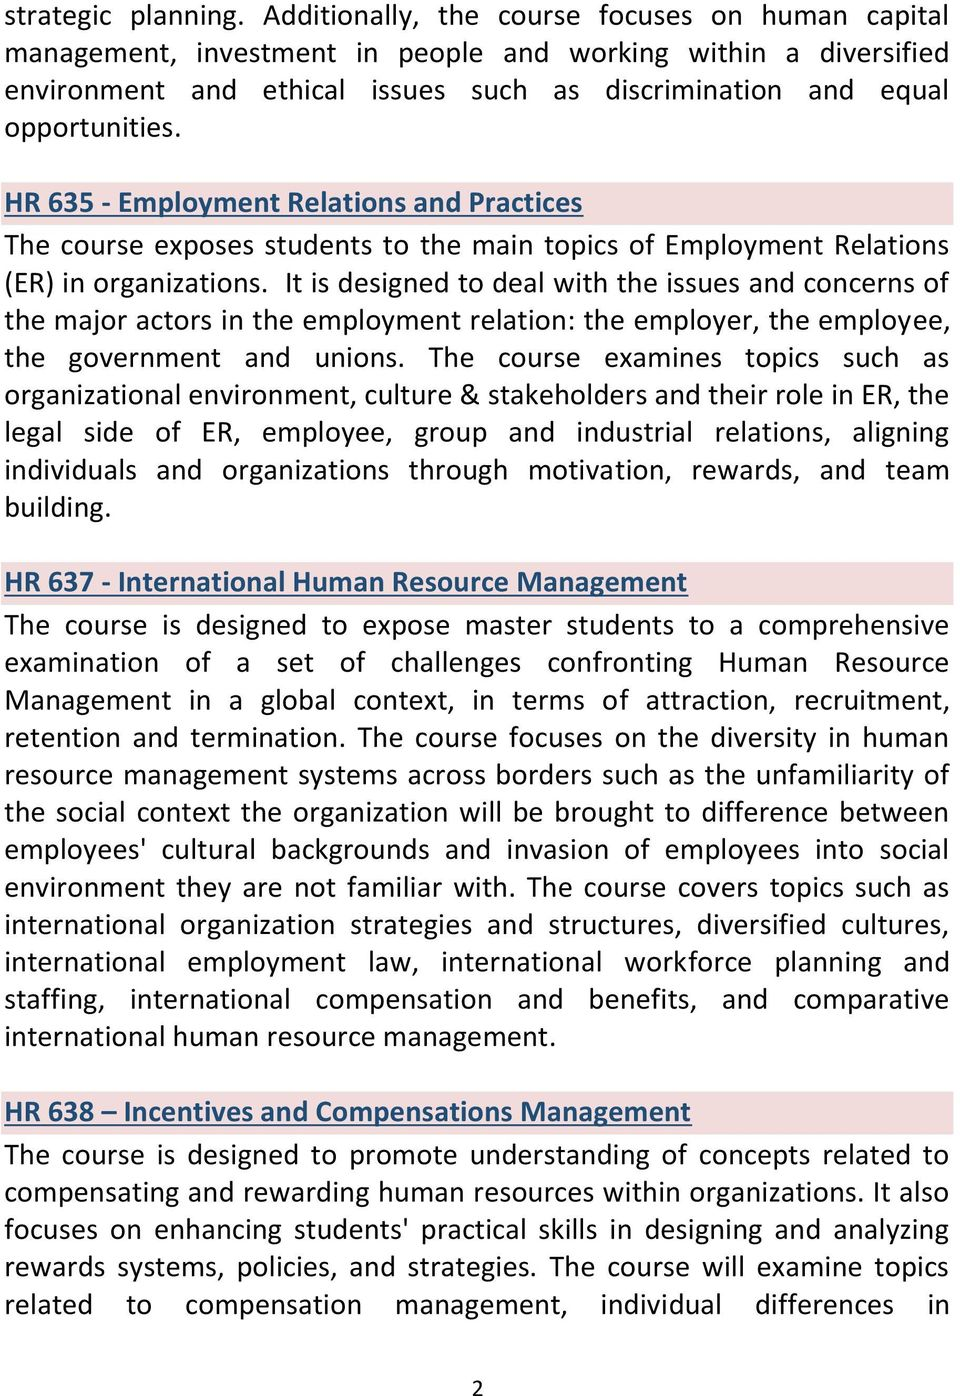 HR 635 - Employment Relations and Practices The course exposes students to the main topics of Employment Relations (ER) in organizations.